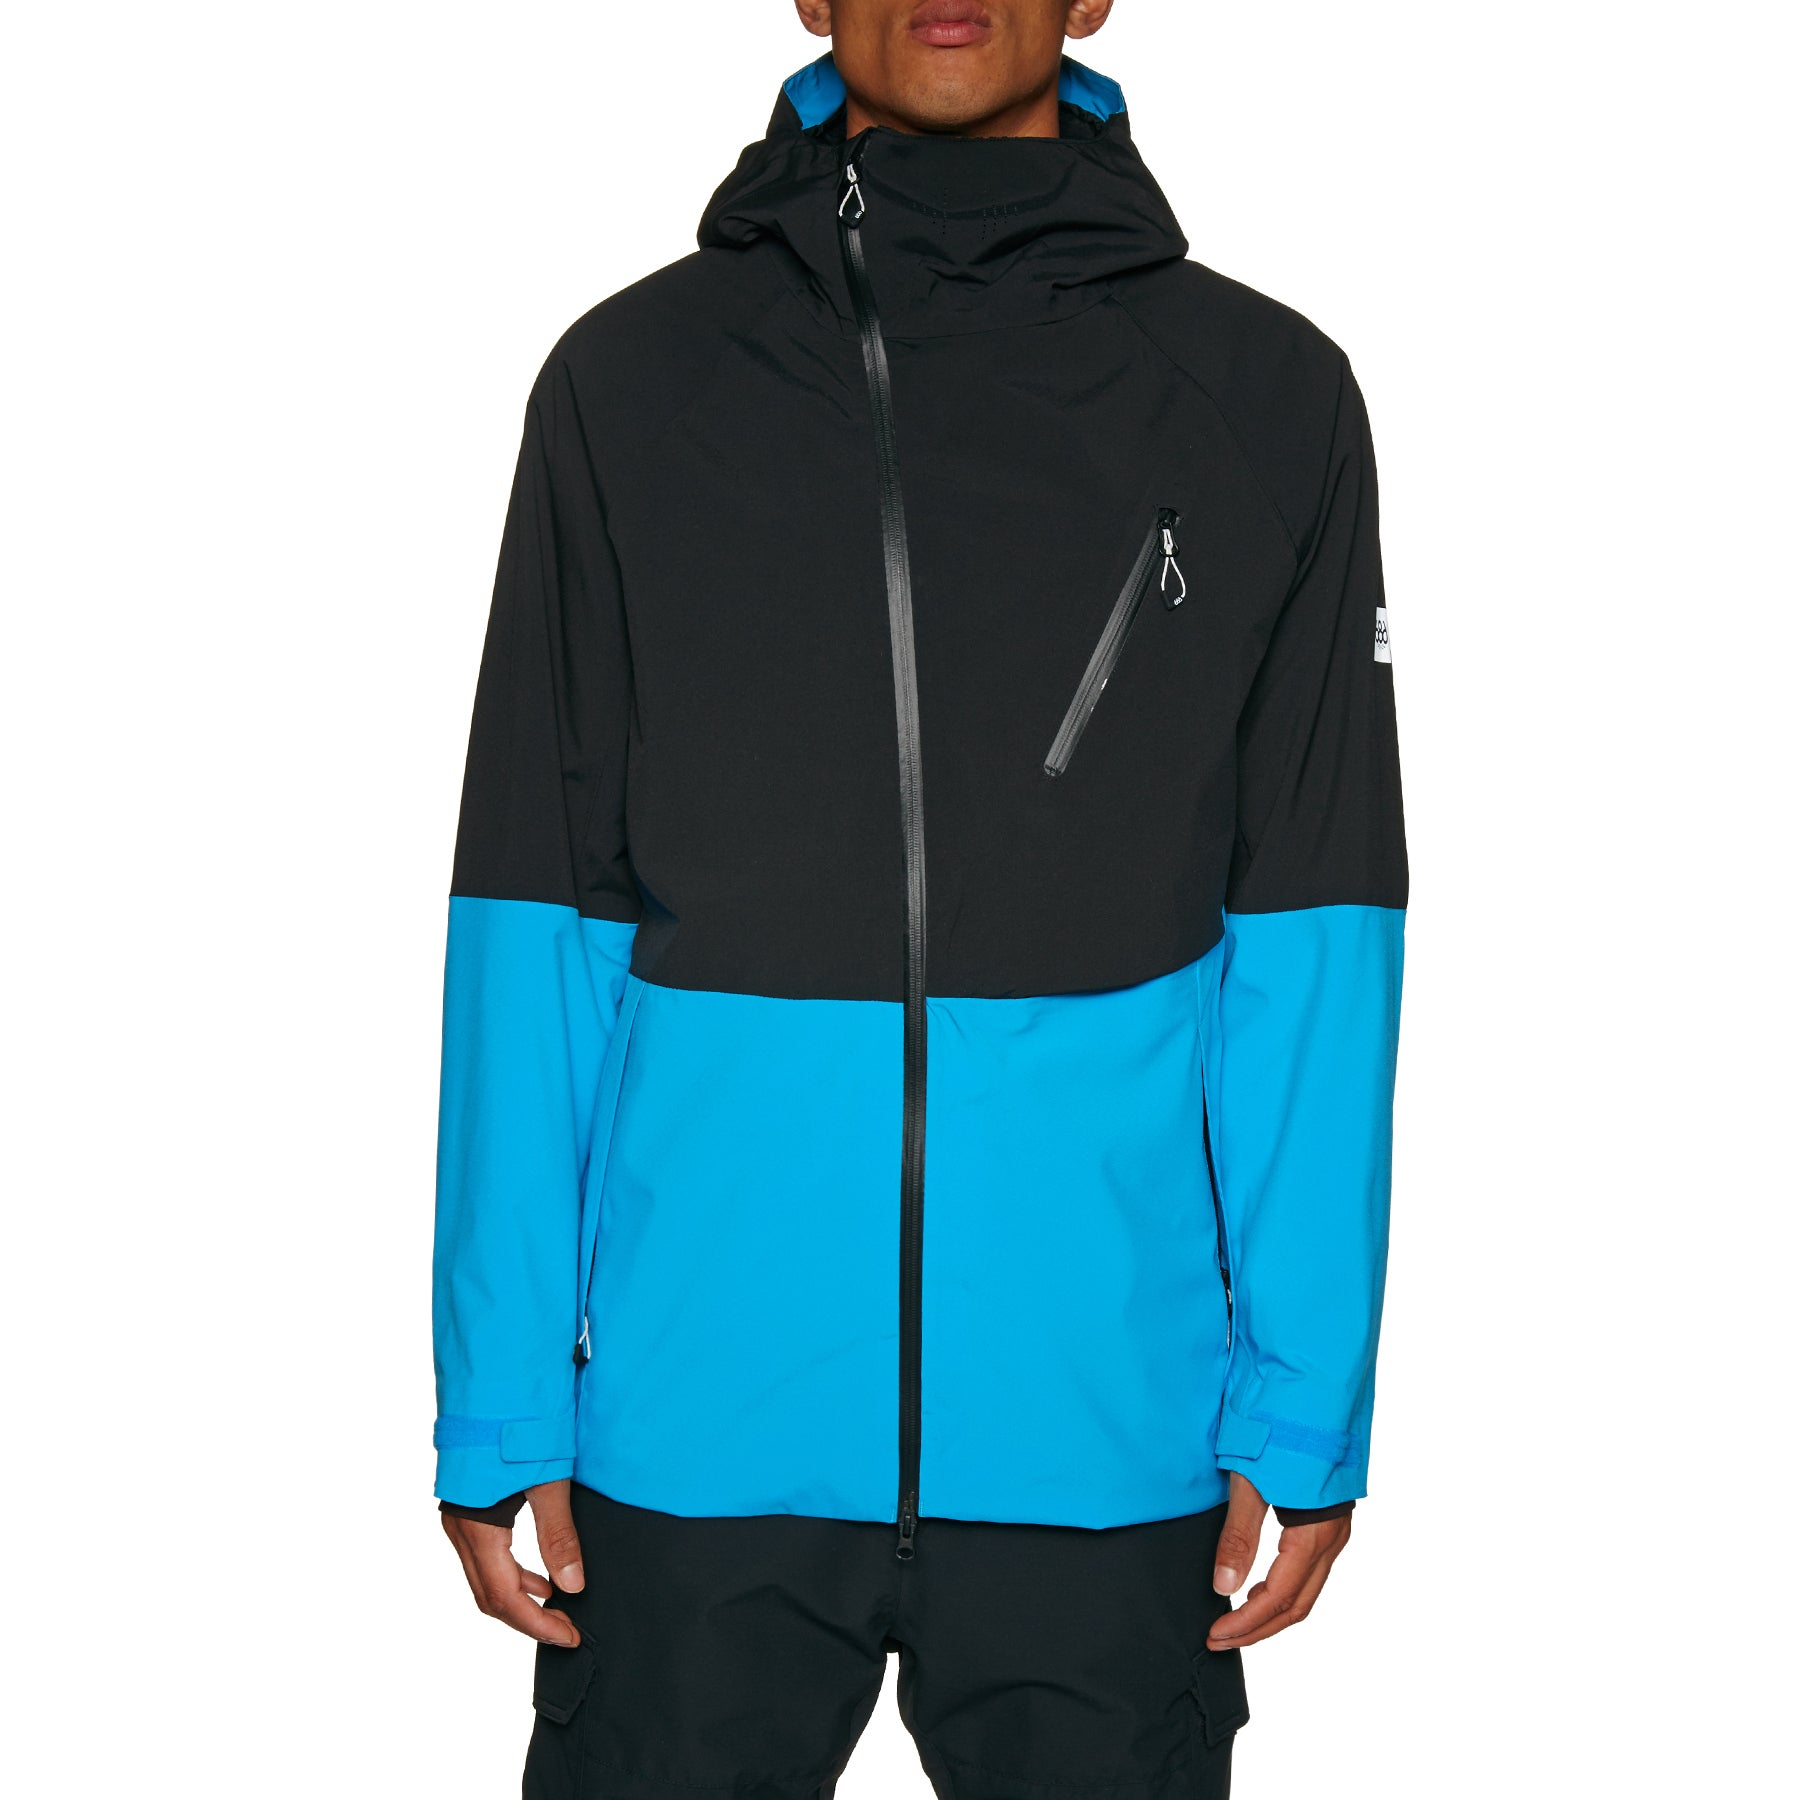 Giacca Snowboard 686 Hydra Thermagraph - Bluebird Colorblock